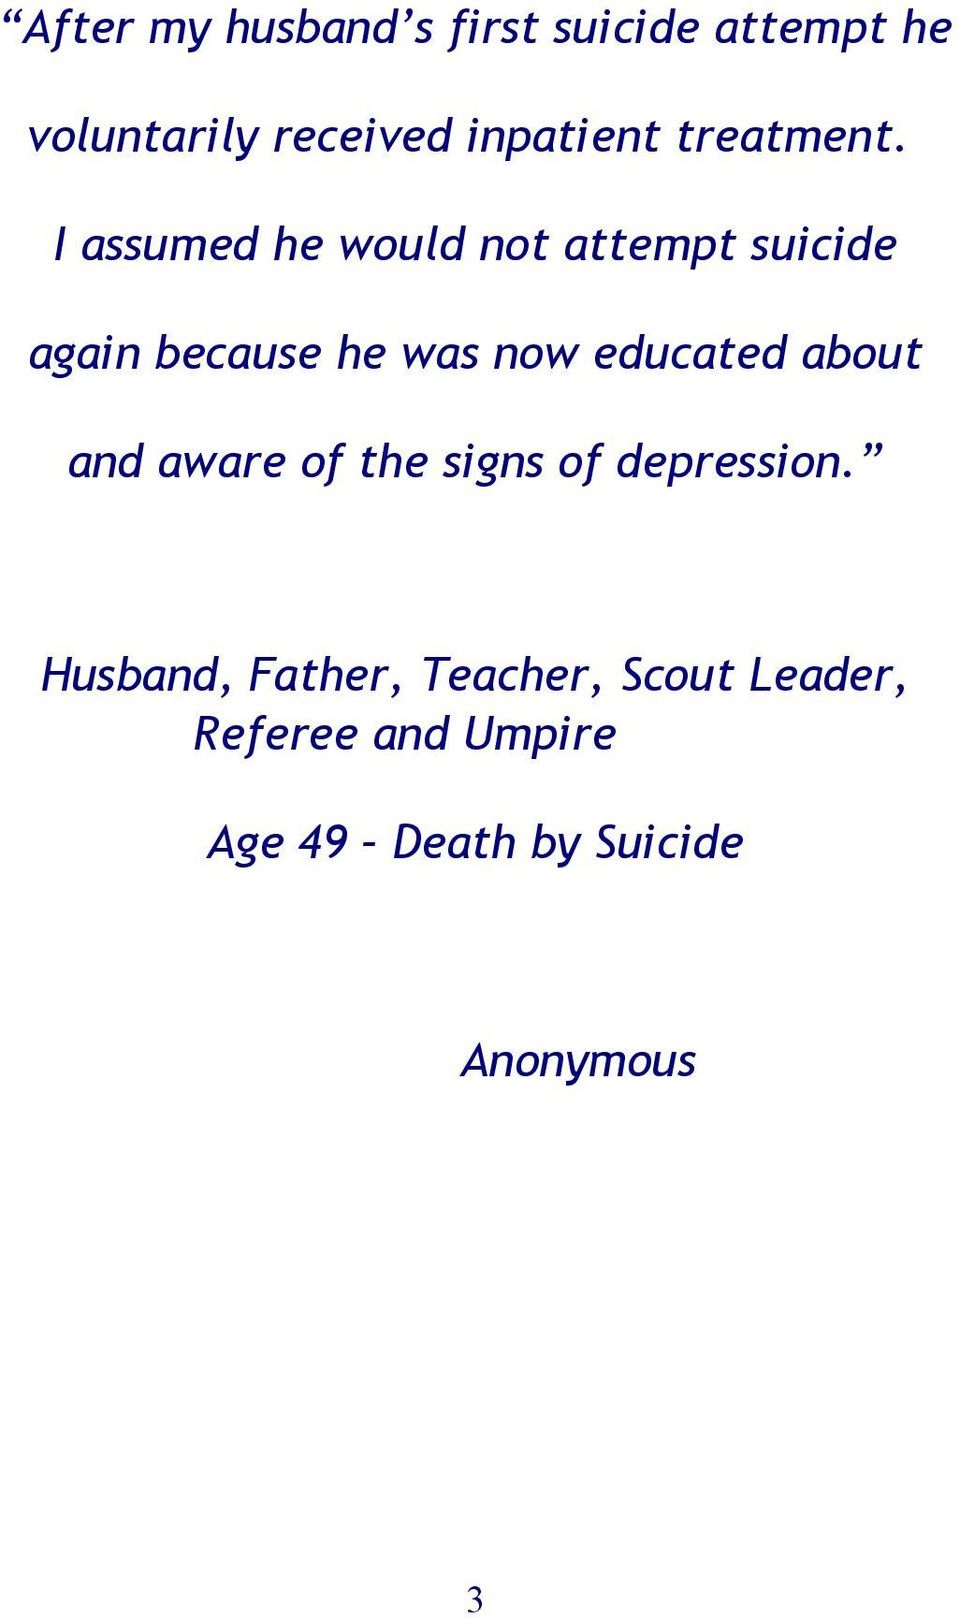 I assumed he would not attempt suicide again because he was now educated